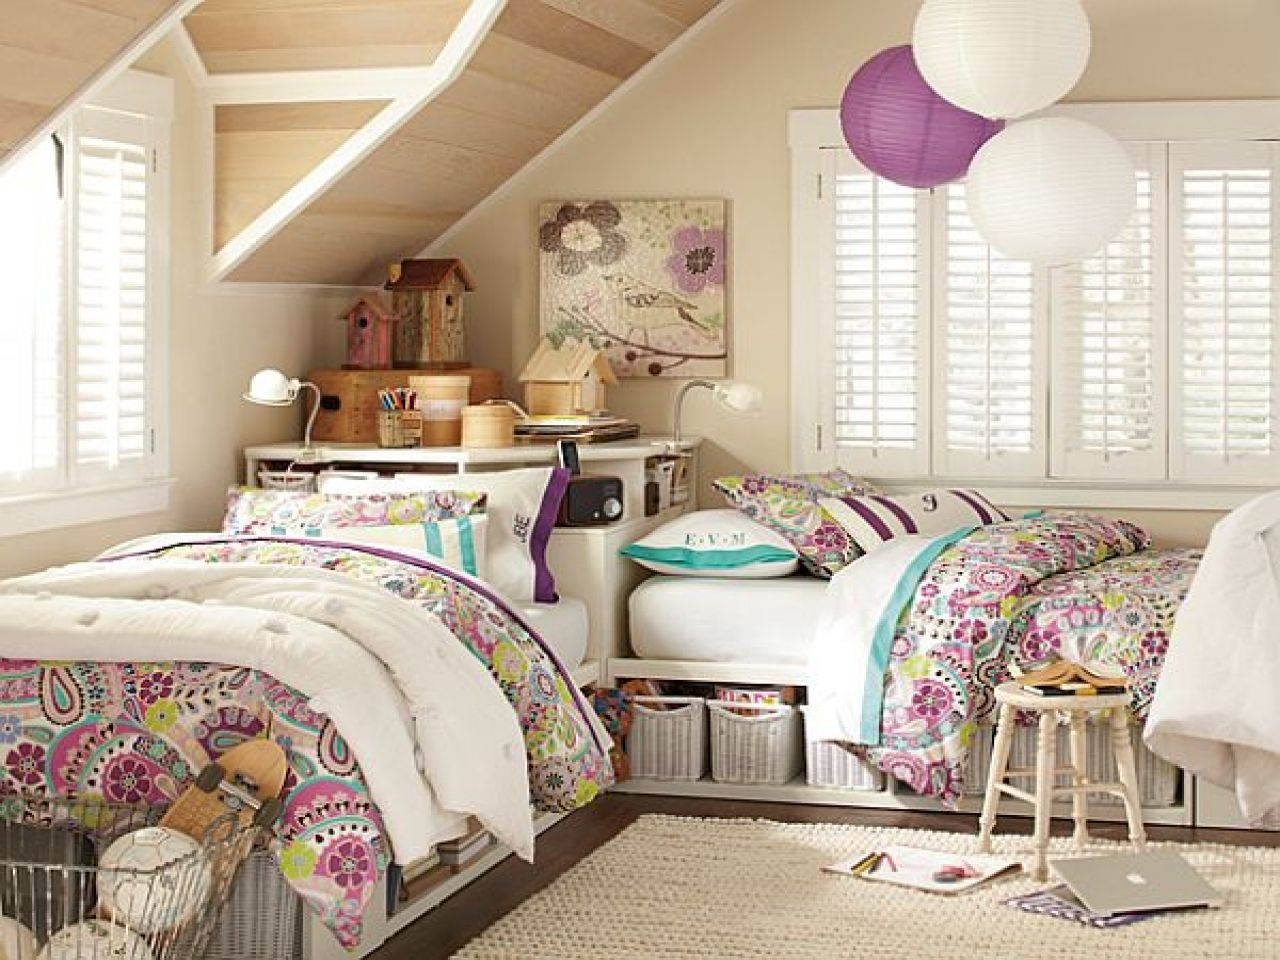 Small Bedroom Ideas For 2 Teenage Girls